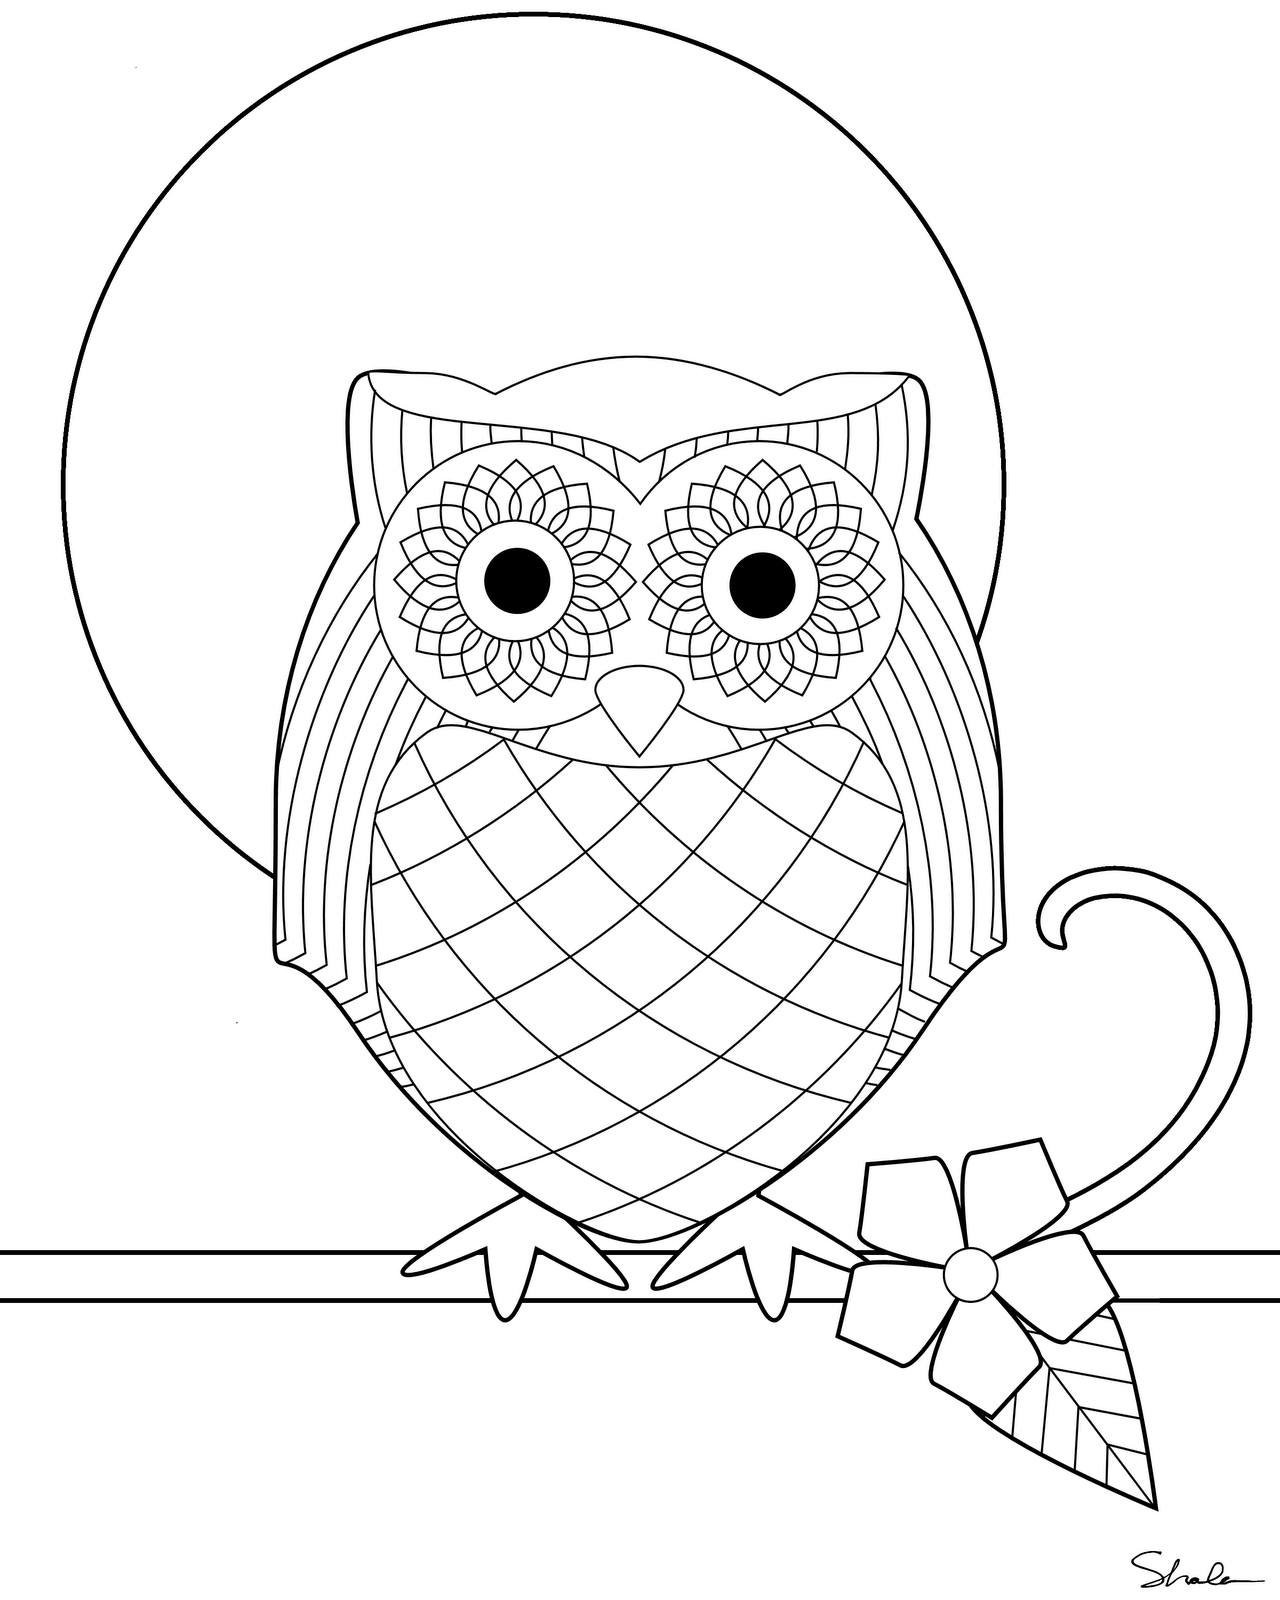 Don't Eat the Paste: Owl coloring page